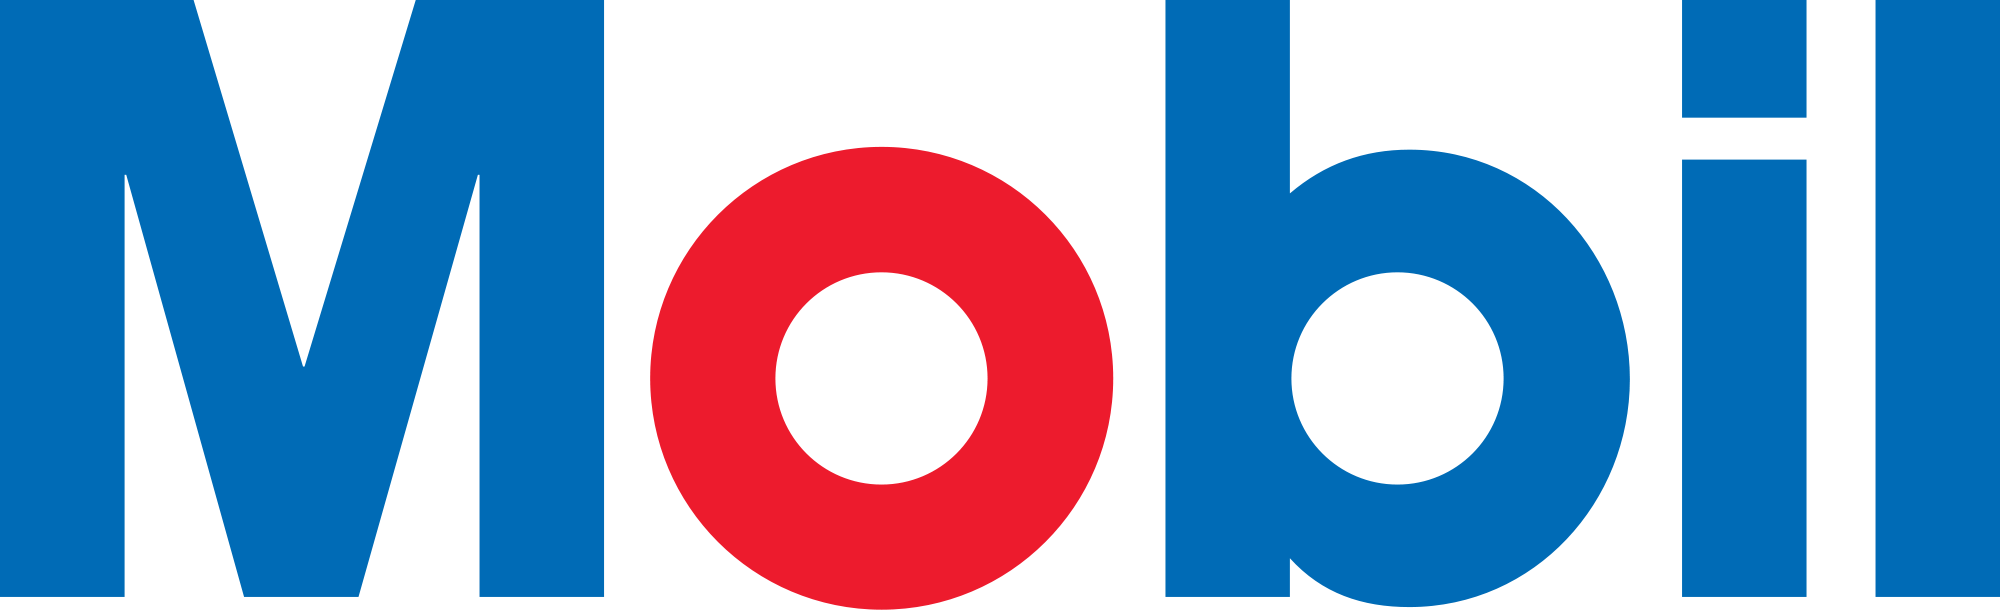 Meaning mobil logo and symbol history and evolution for Mobil logo